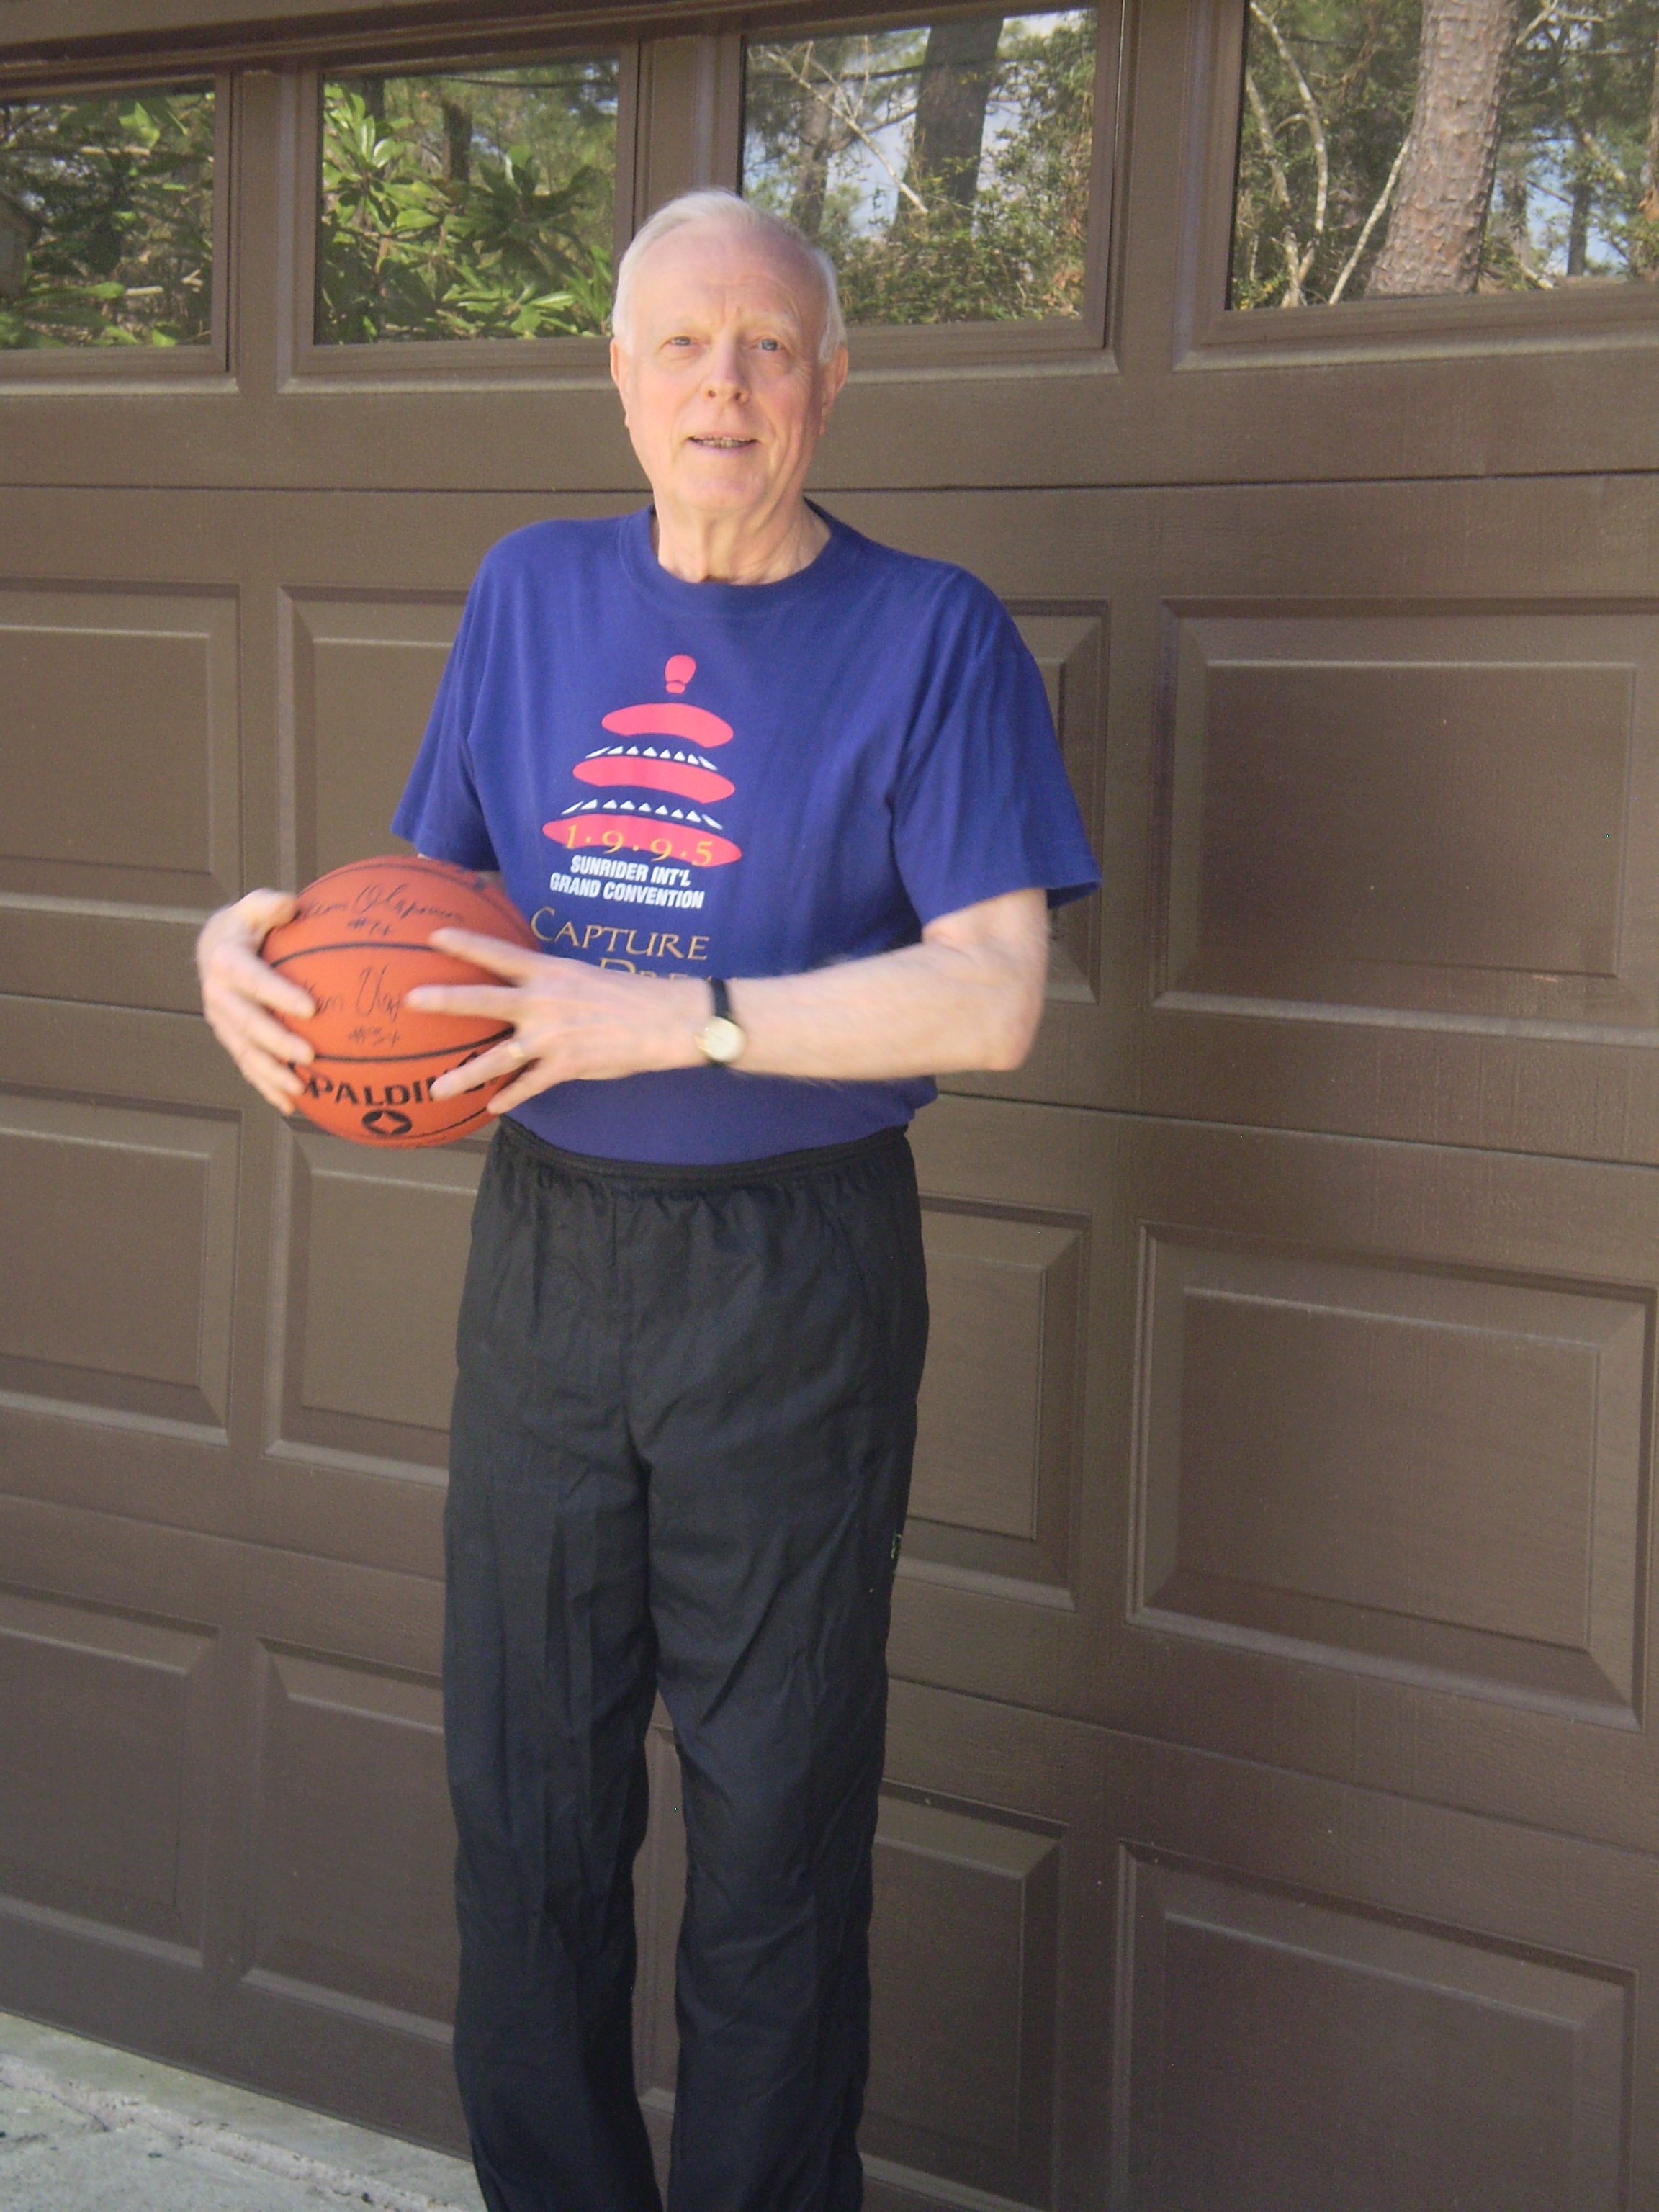 Bill dribbles on the court; not in drawers.